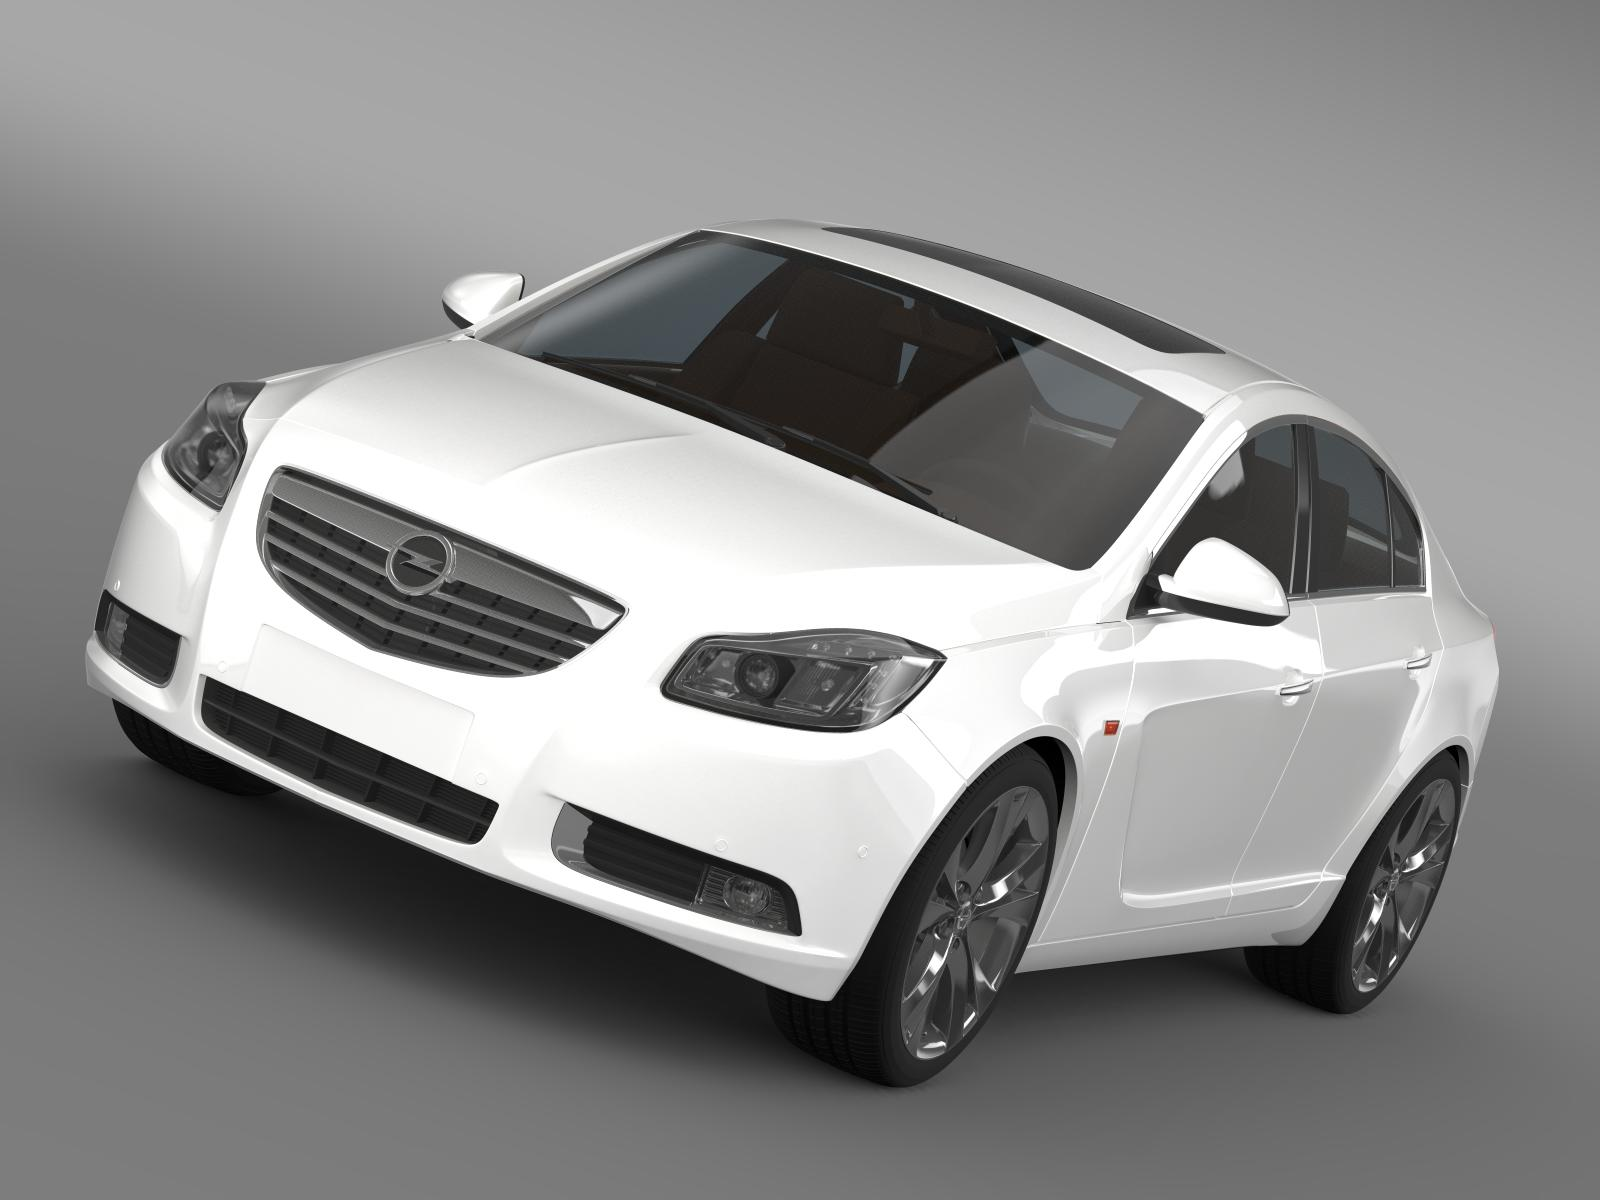 opel insignia turbo 2008-13 3d model 3ds max fbx c4d